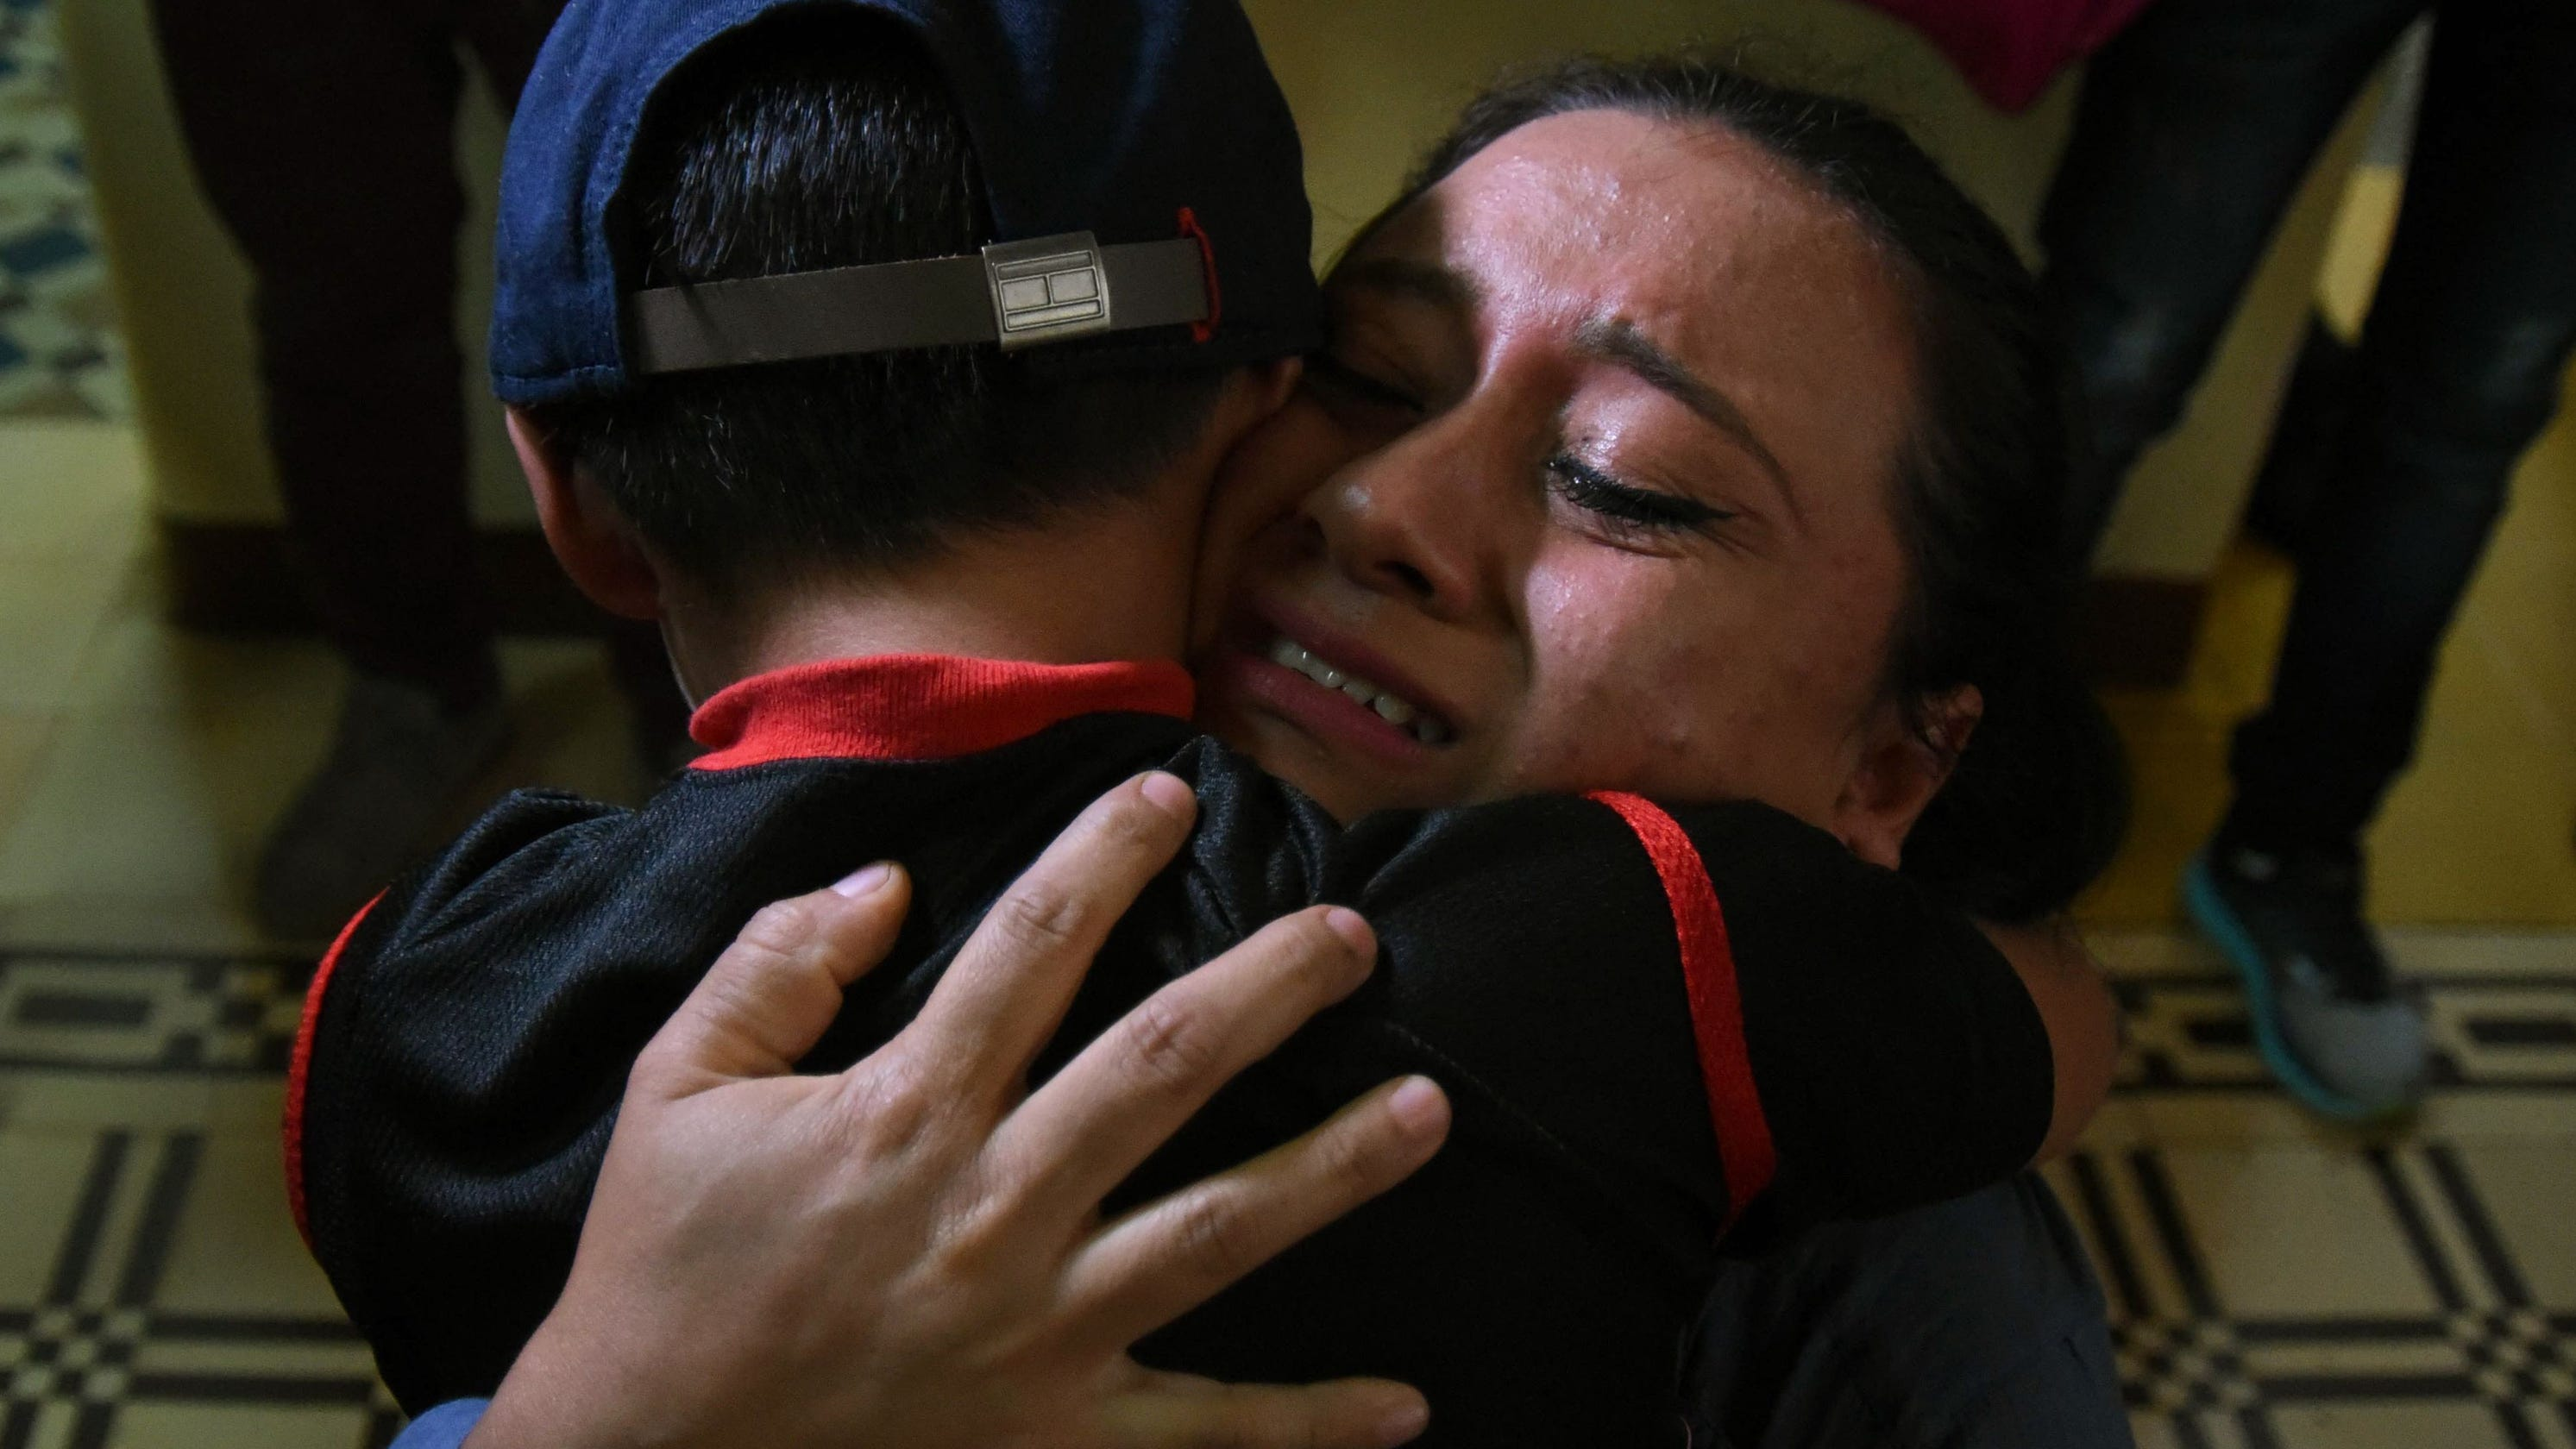 Lingering trauma: Families separated at border suffer long-term mental health challenges